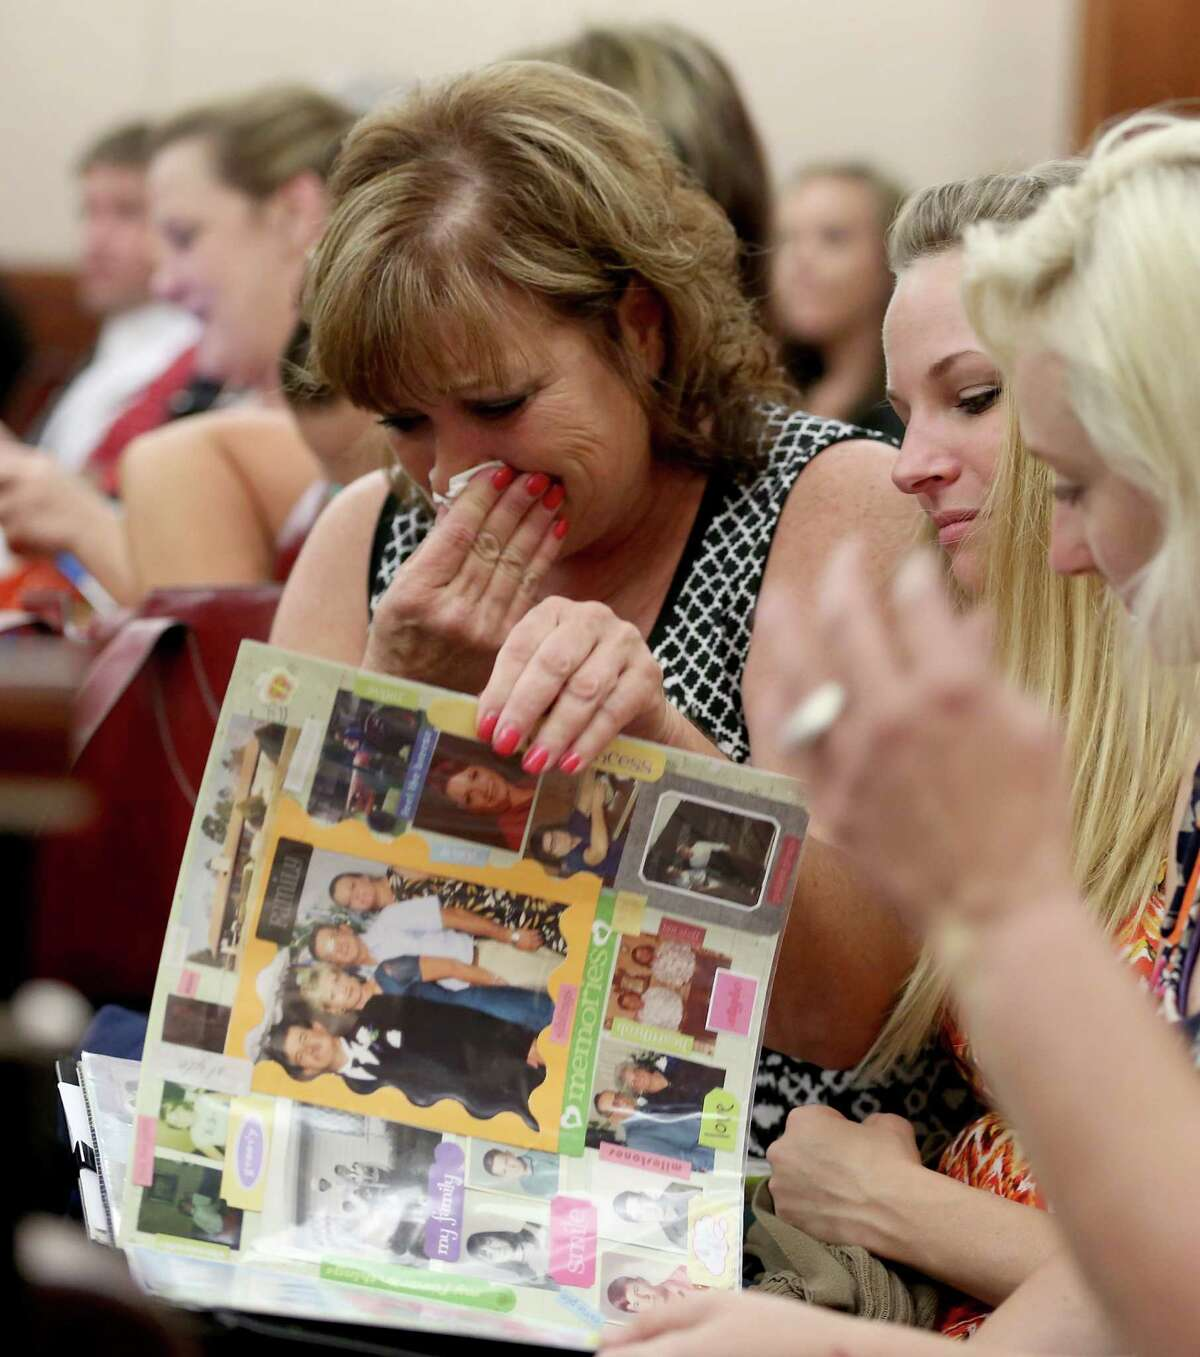 Friends weep as they look at photo album of Michelle Warner, 31, before the start of closing arguments in a Houston courtroom.